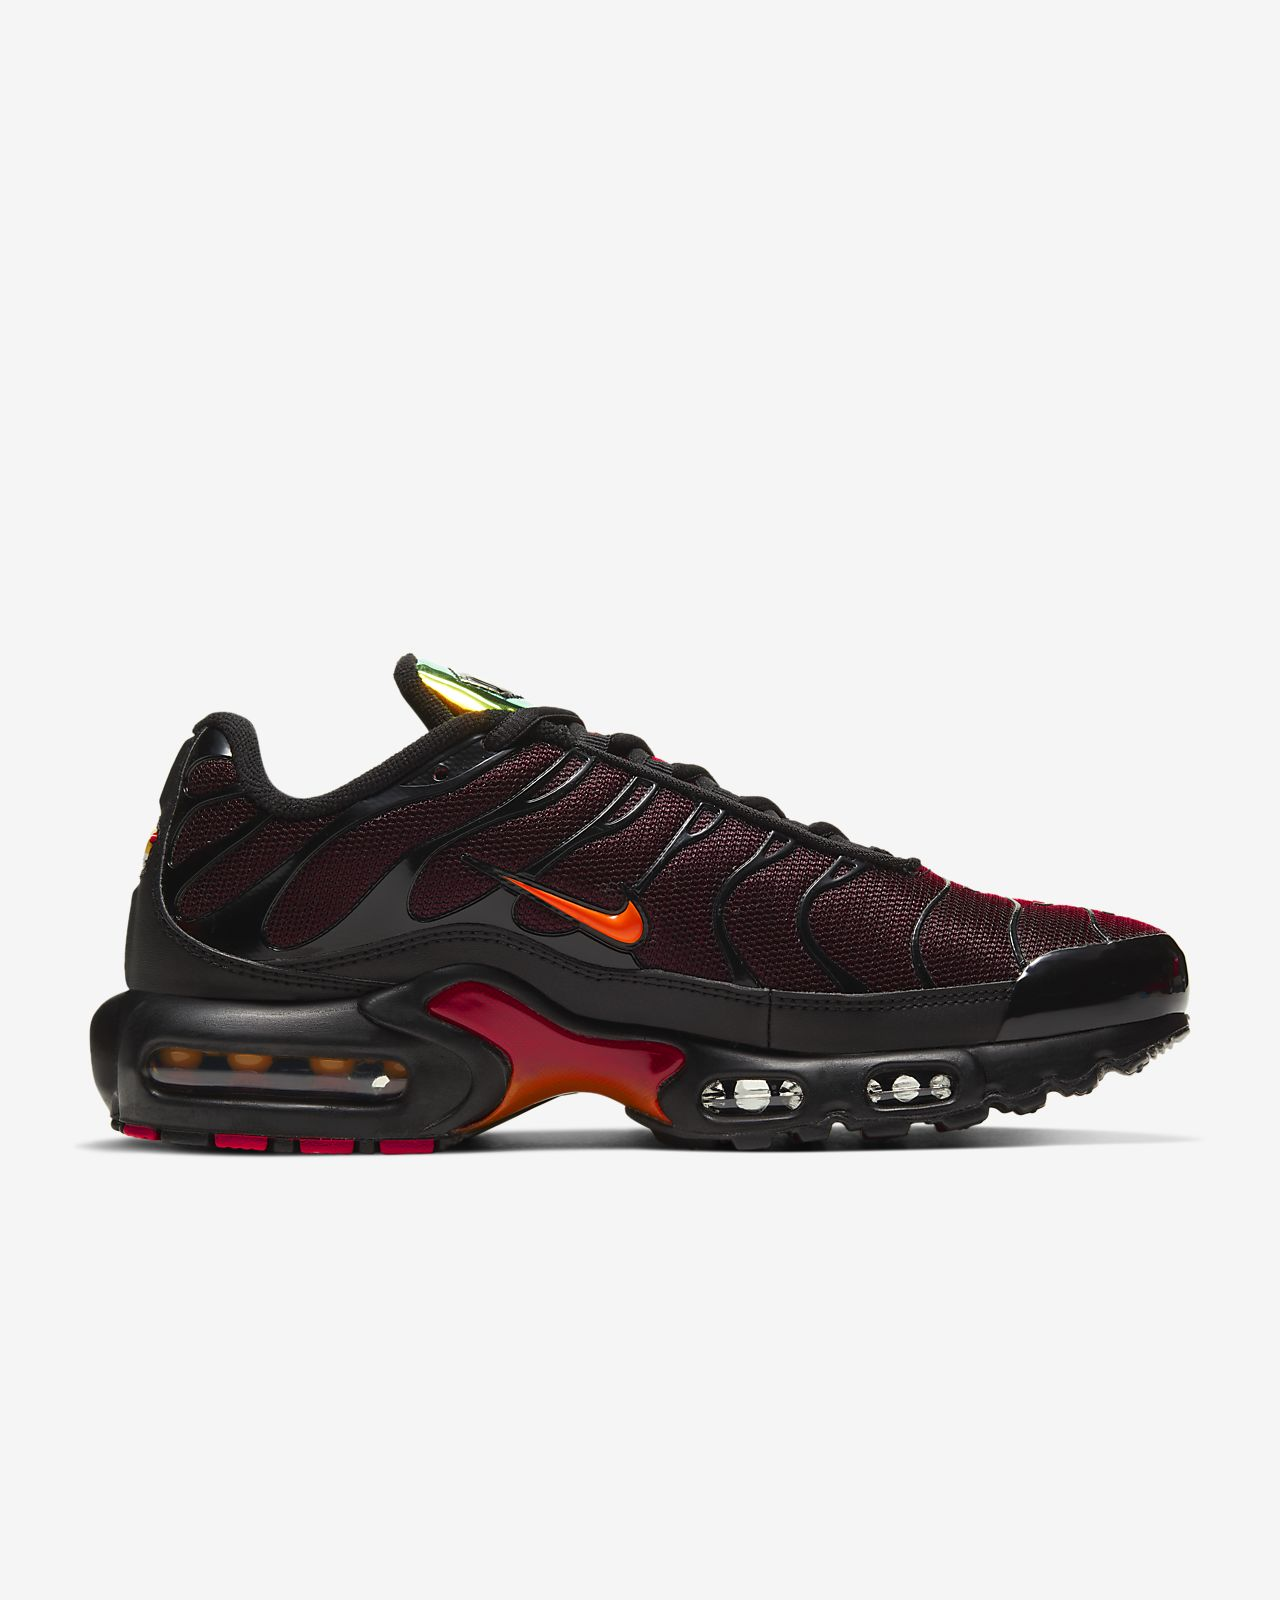 The Nike Air Max Plus Goes All Red •